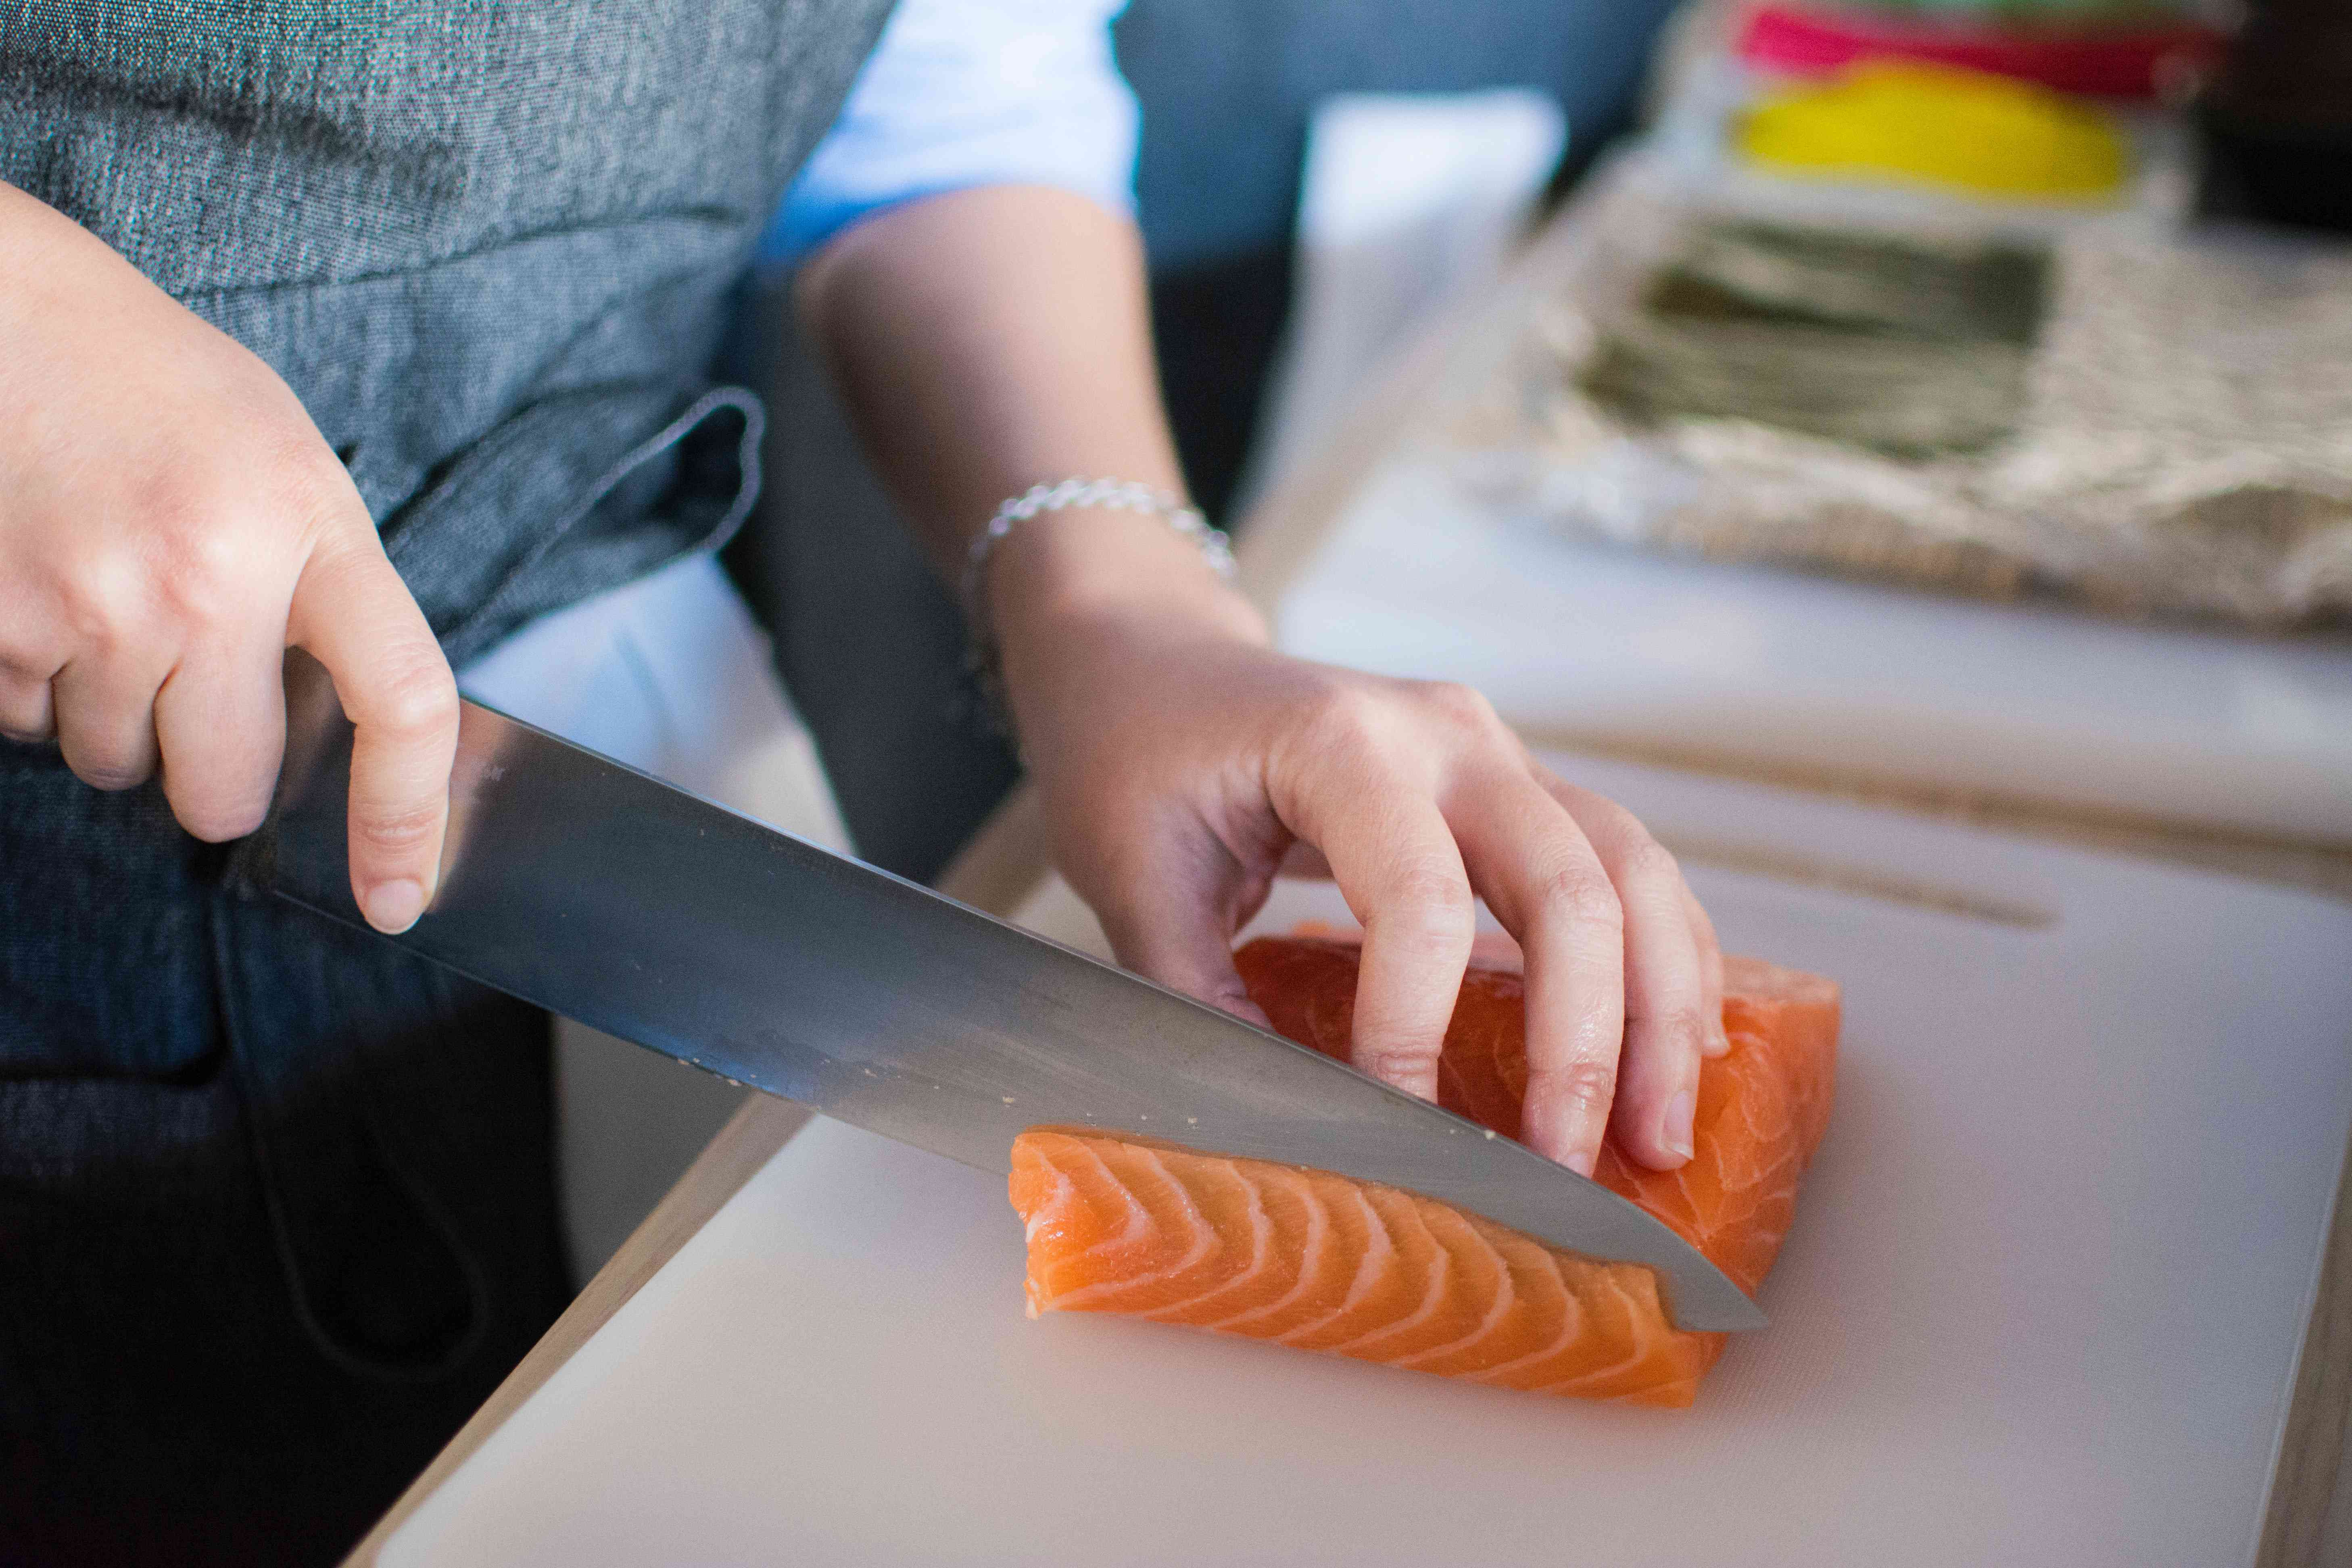 An unseen person cutting salmon with a large knife.